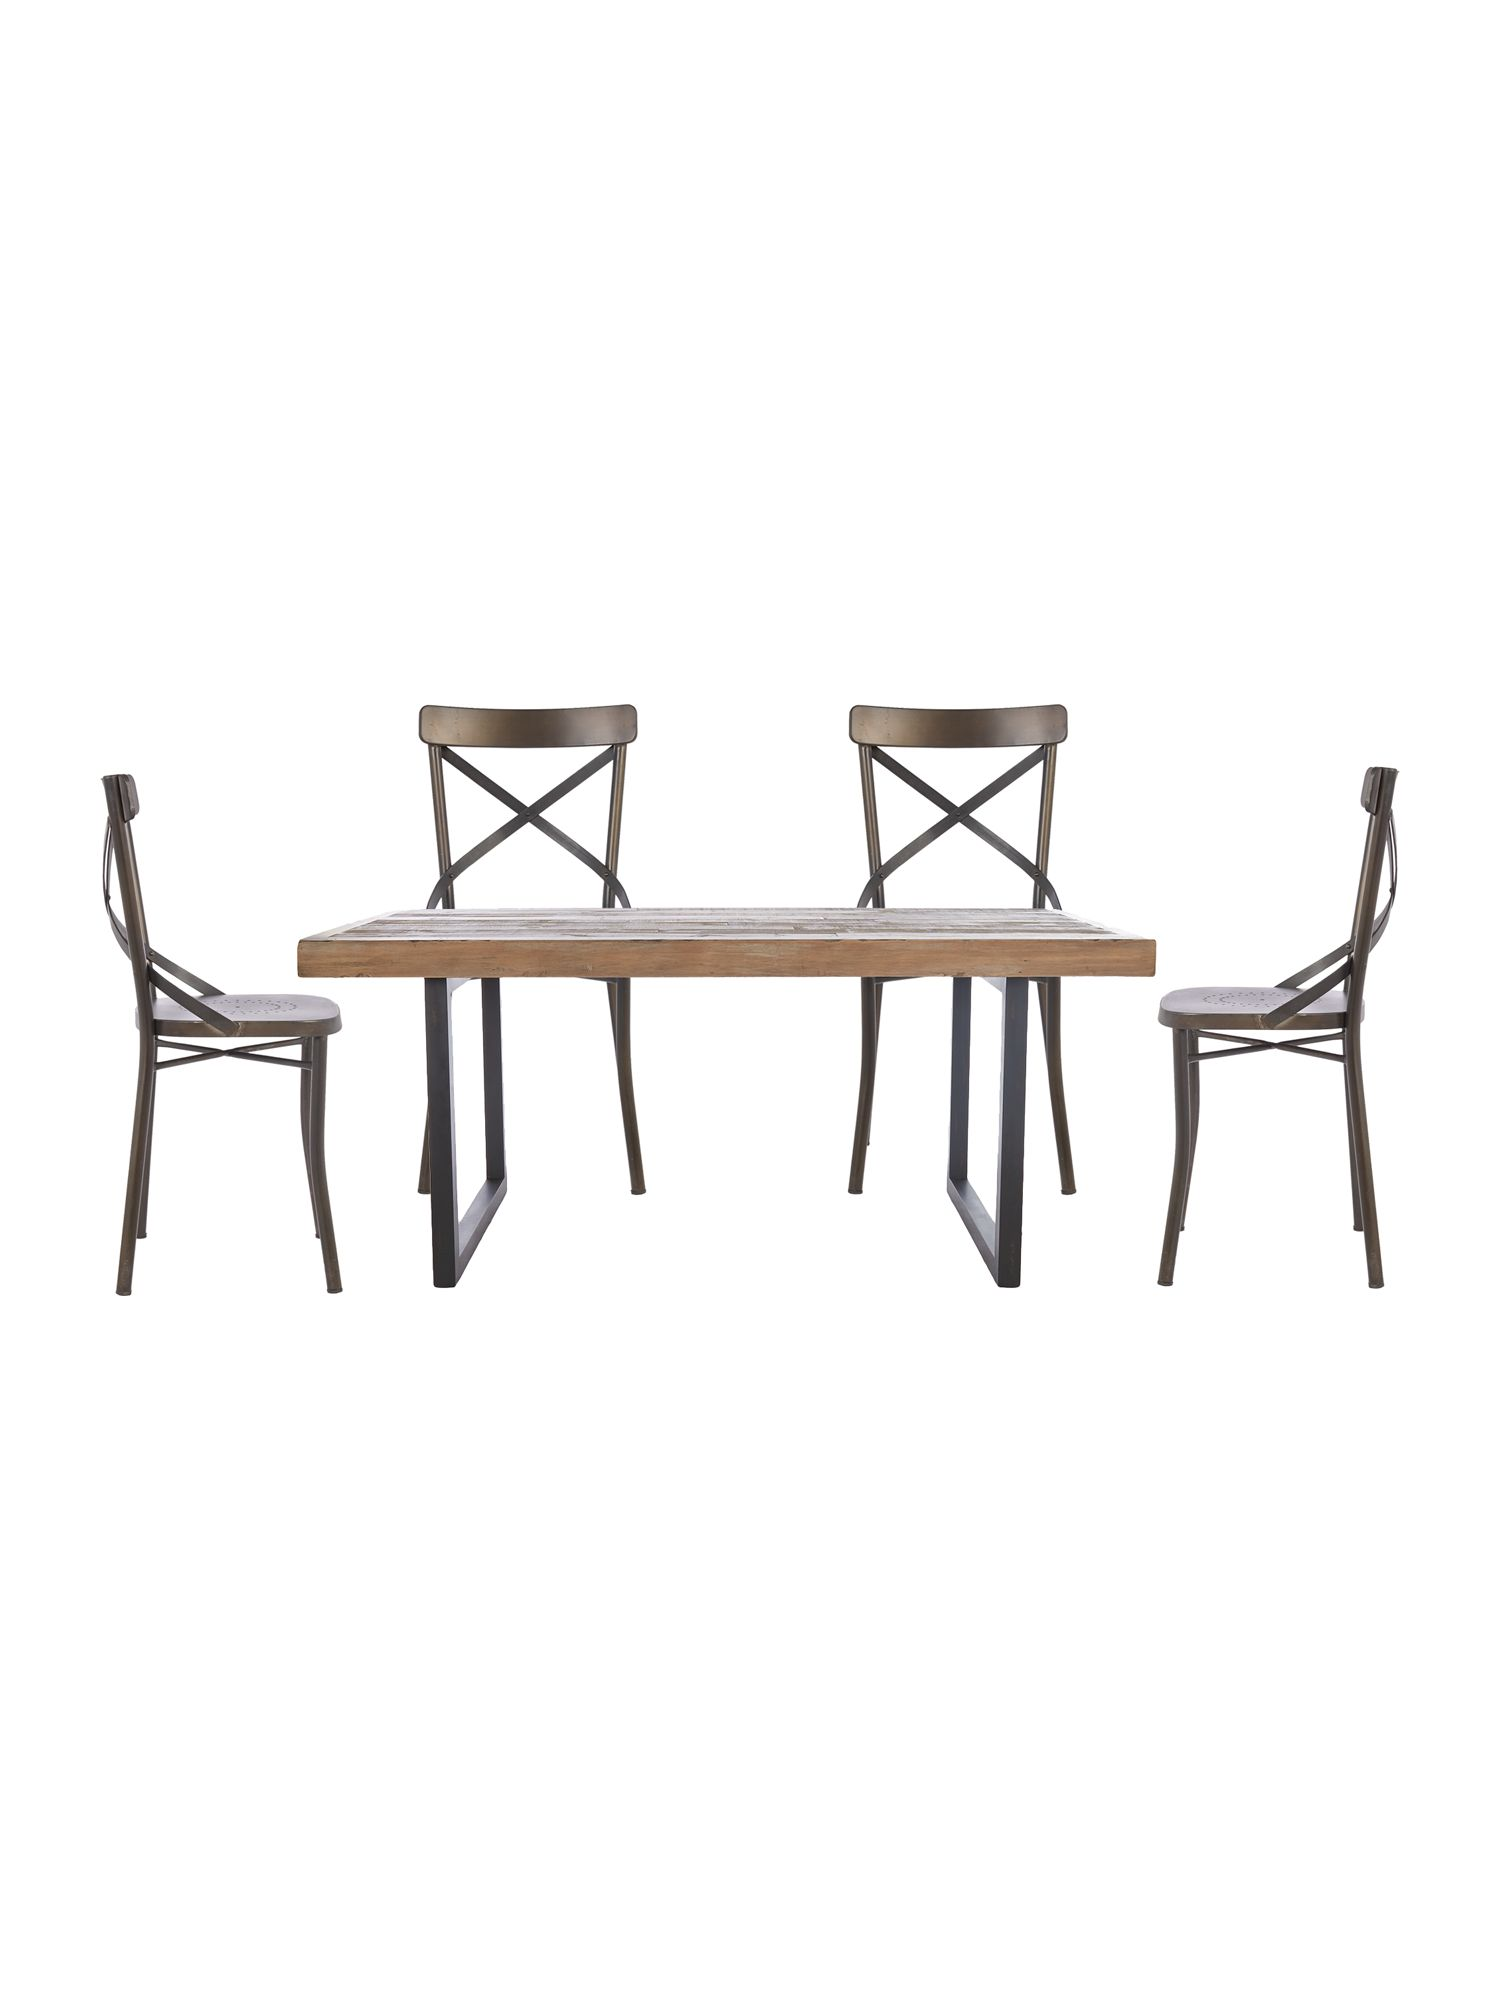 Kennedy dining furniture range